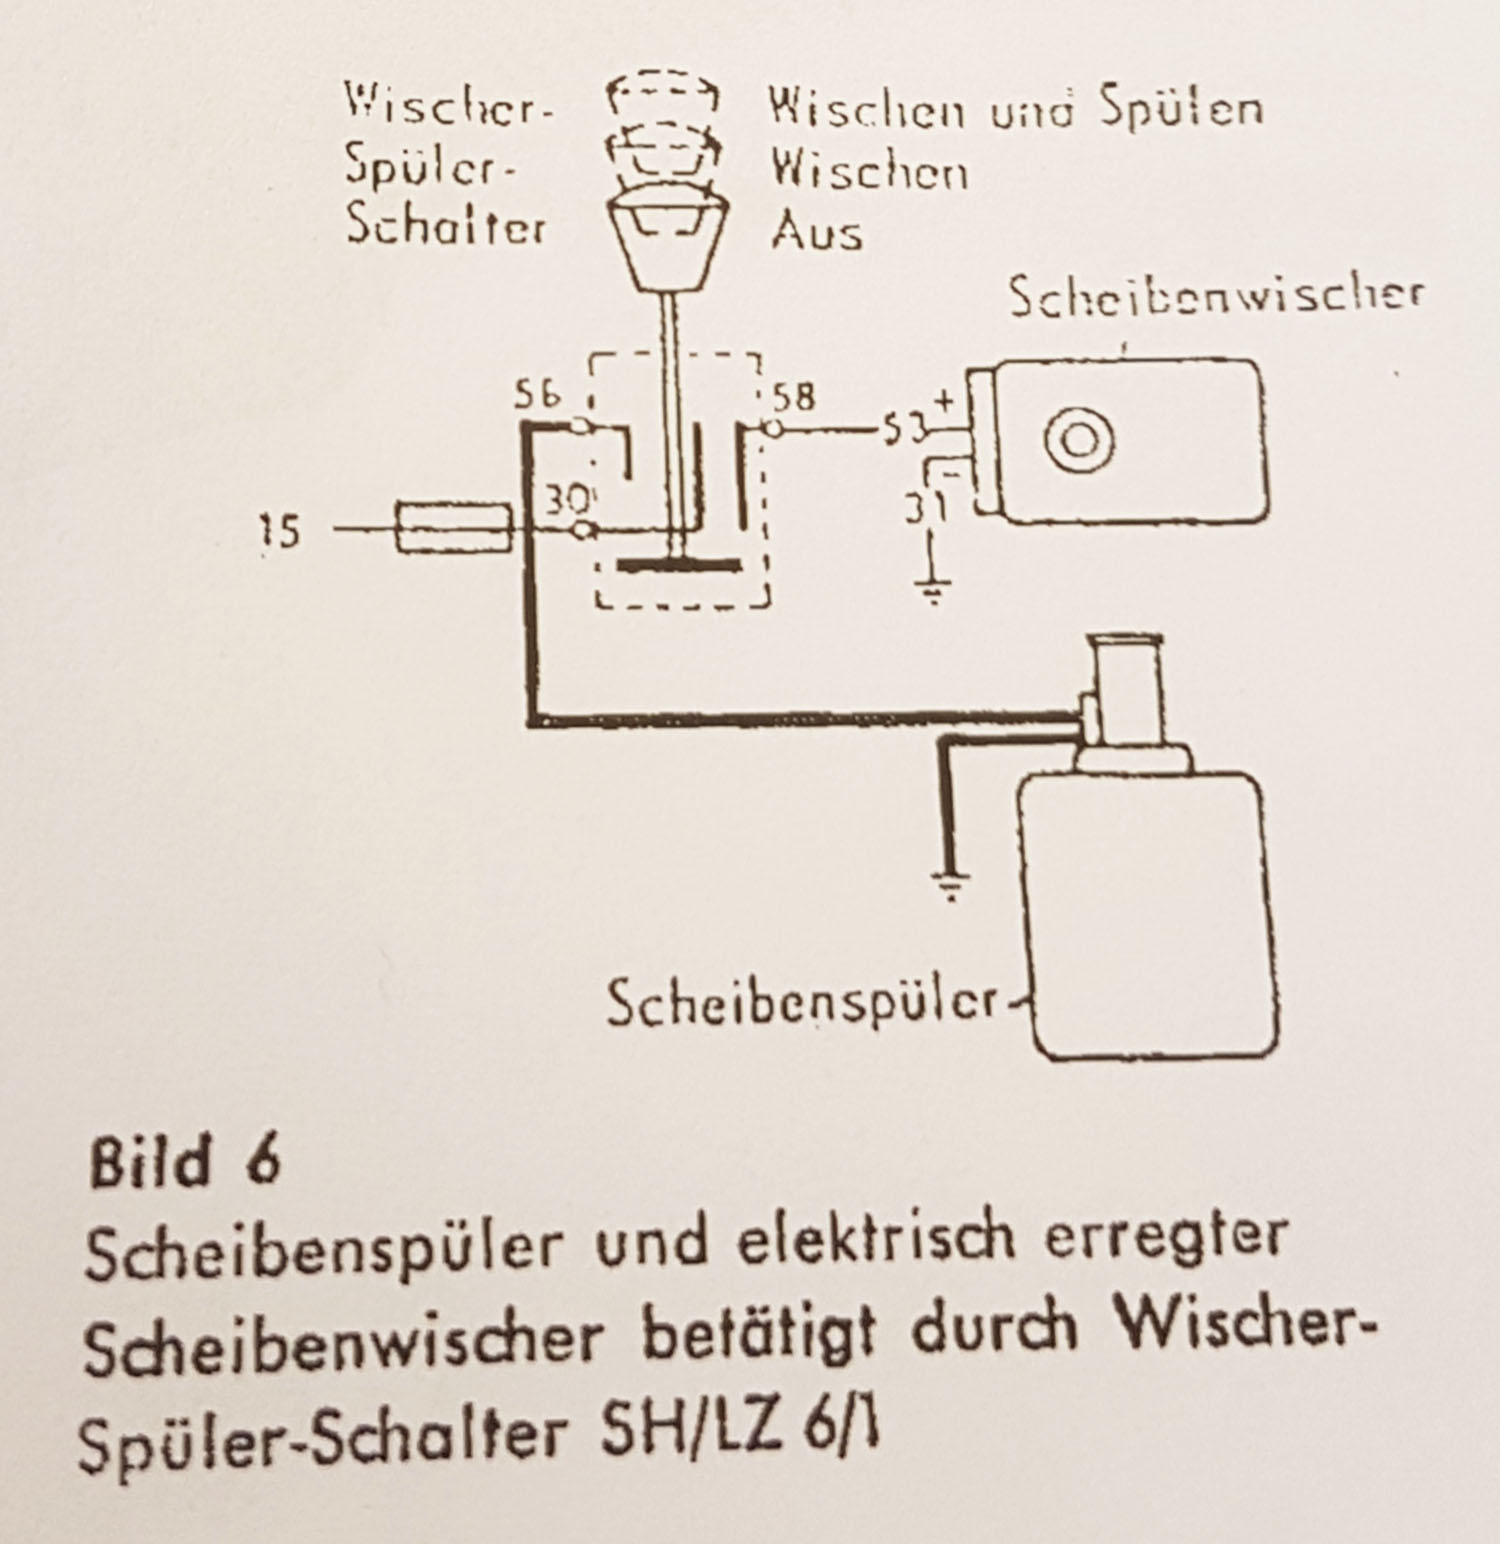 Schematic electrical diagram for Bosch SH/LZ 6/1, similar to my Mercedes-Benz Ponton switch